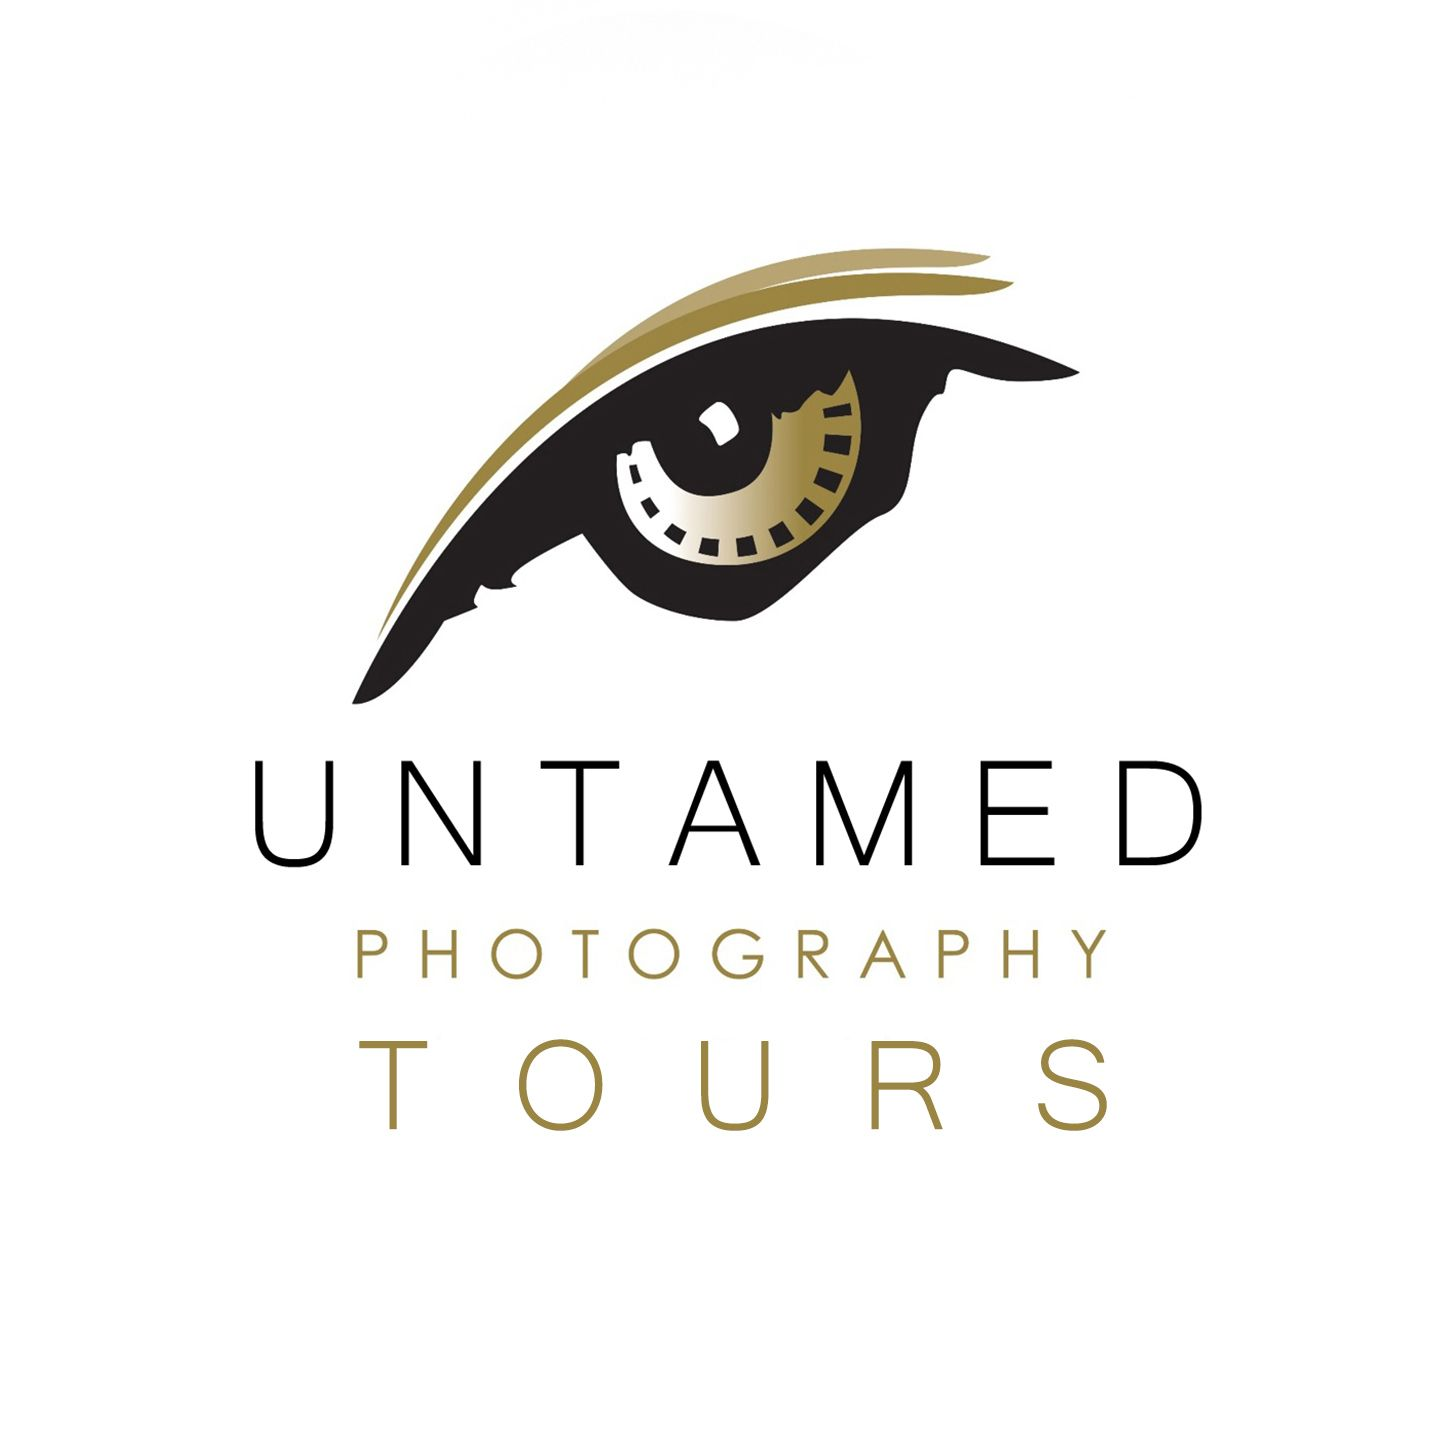 Untamed Photography Tours